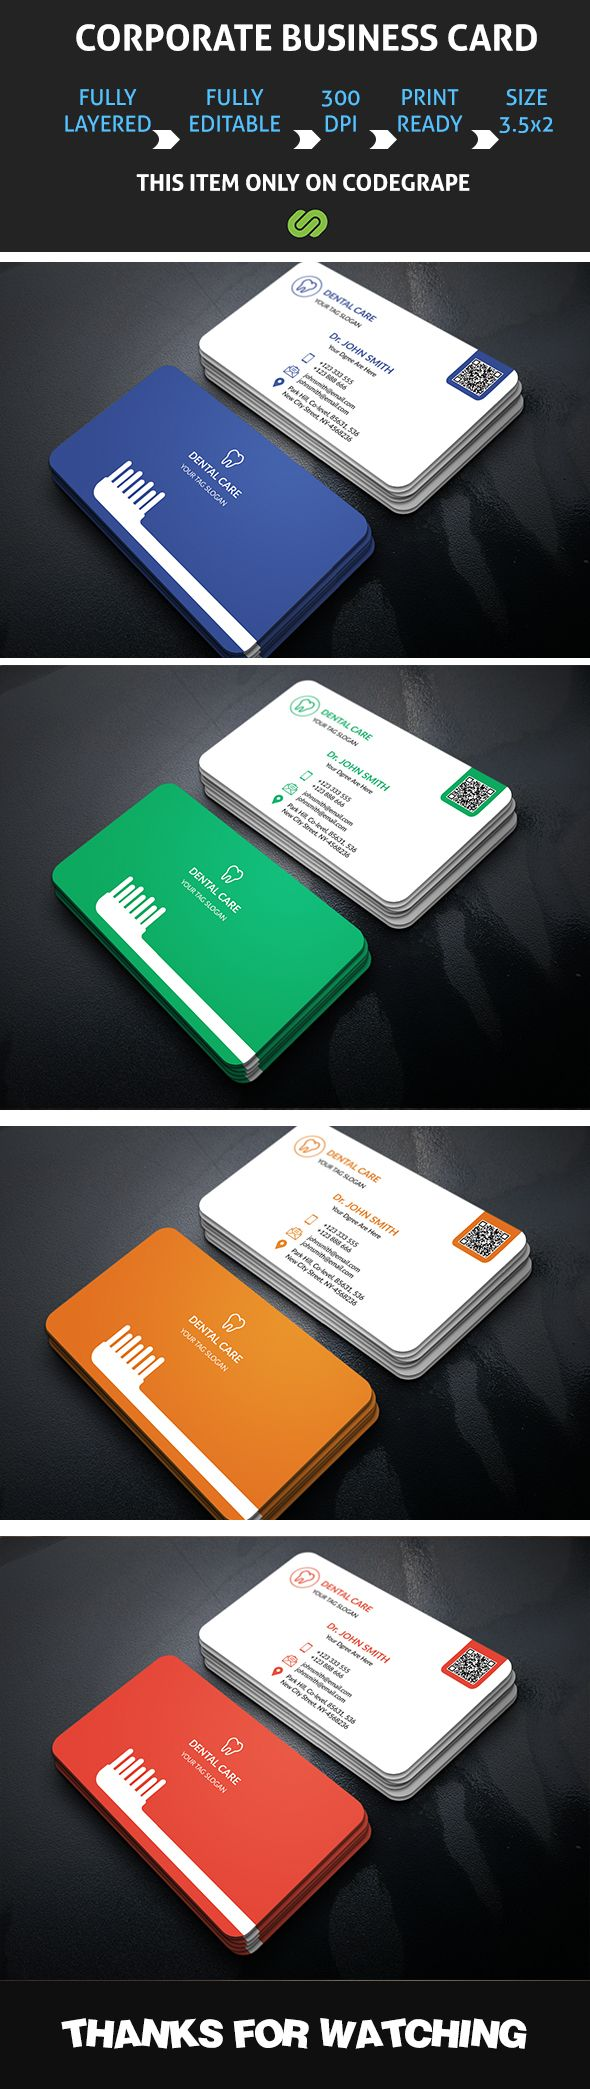 This is a Dental Business Card.This template download contains 4 color variation, which is 300 dpi print-ready CMYK 8 PSD files. All main elements are easily editable and customizable.